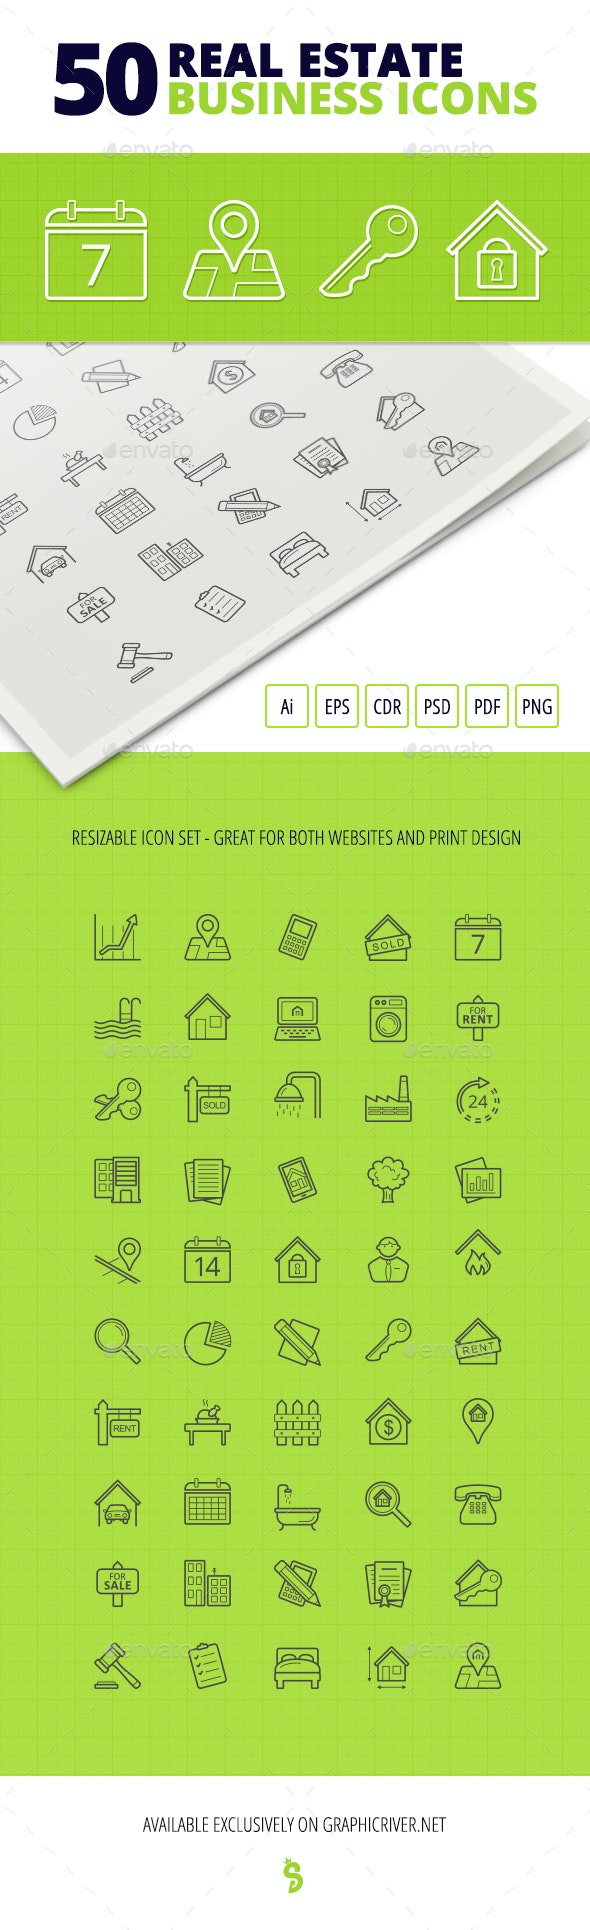 50 Real Estate Business Icons - Business Icons